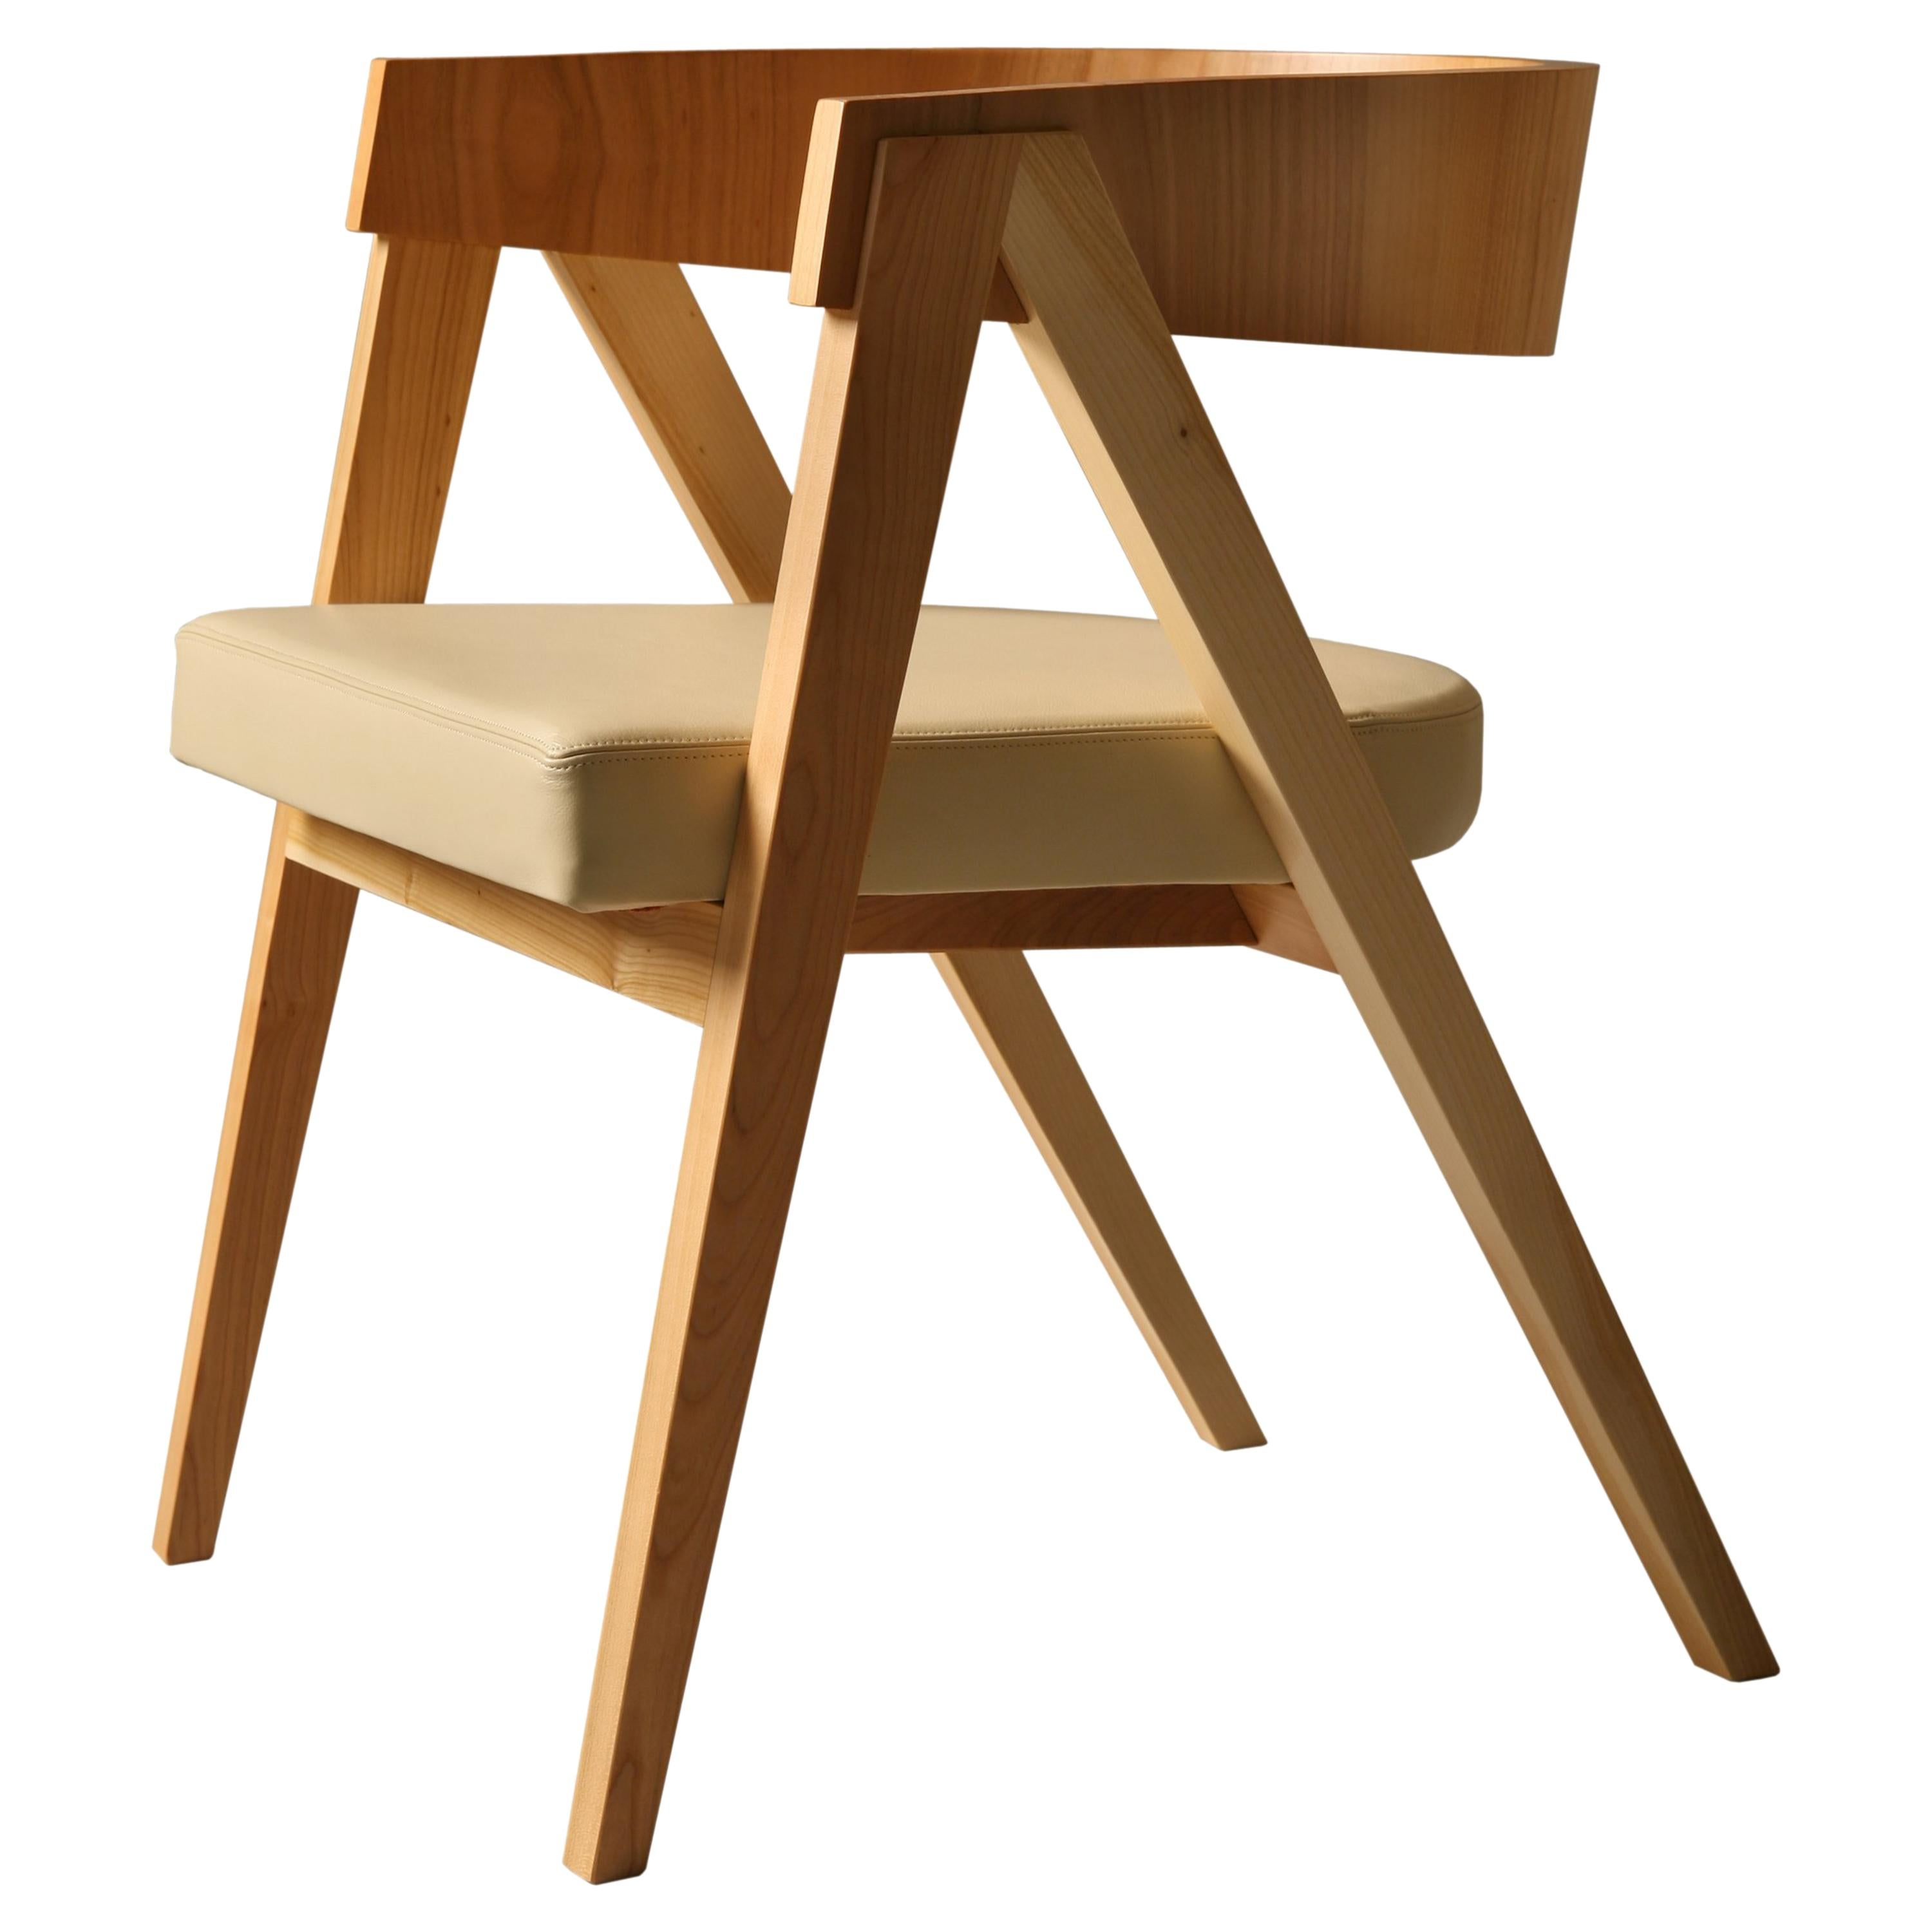 Contemporary Wooden Armchair with Padded Seat and Curved Backrest